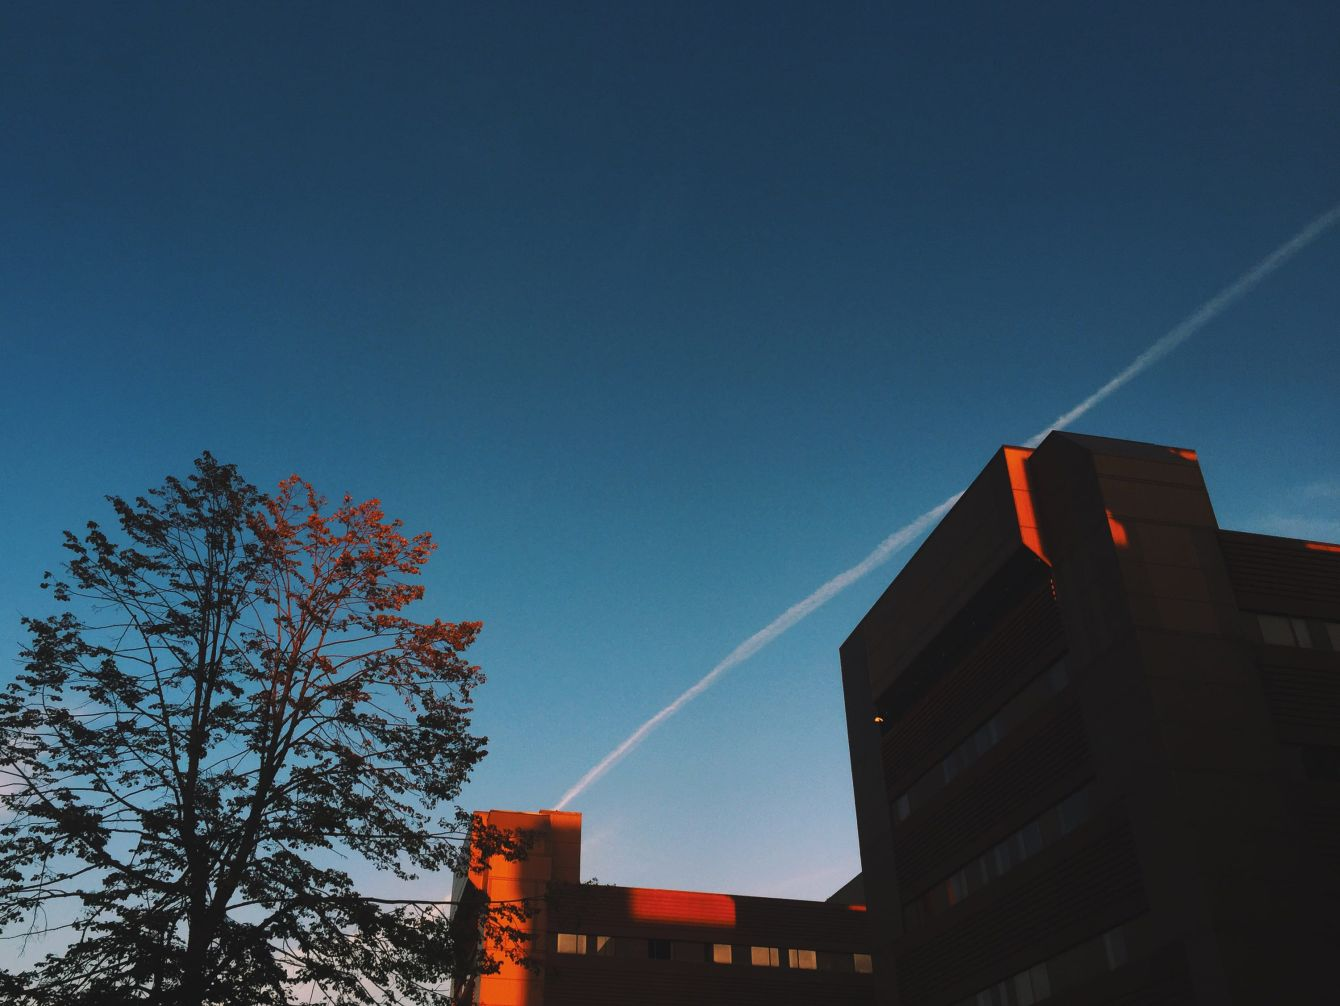 Click thumbnail to see details about photo - Red Hospital Highlights at Dusk Photograph